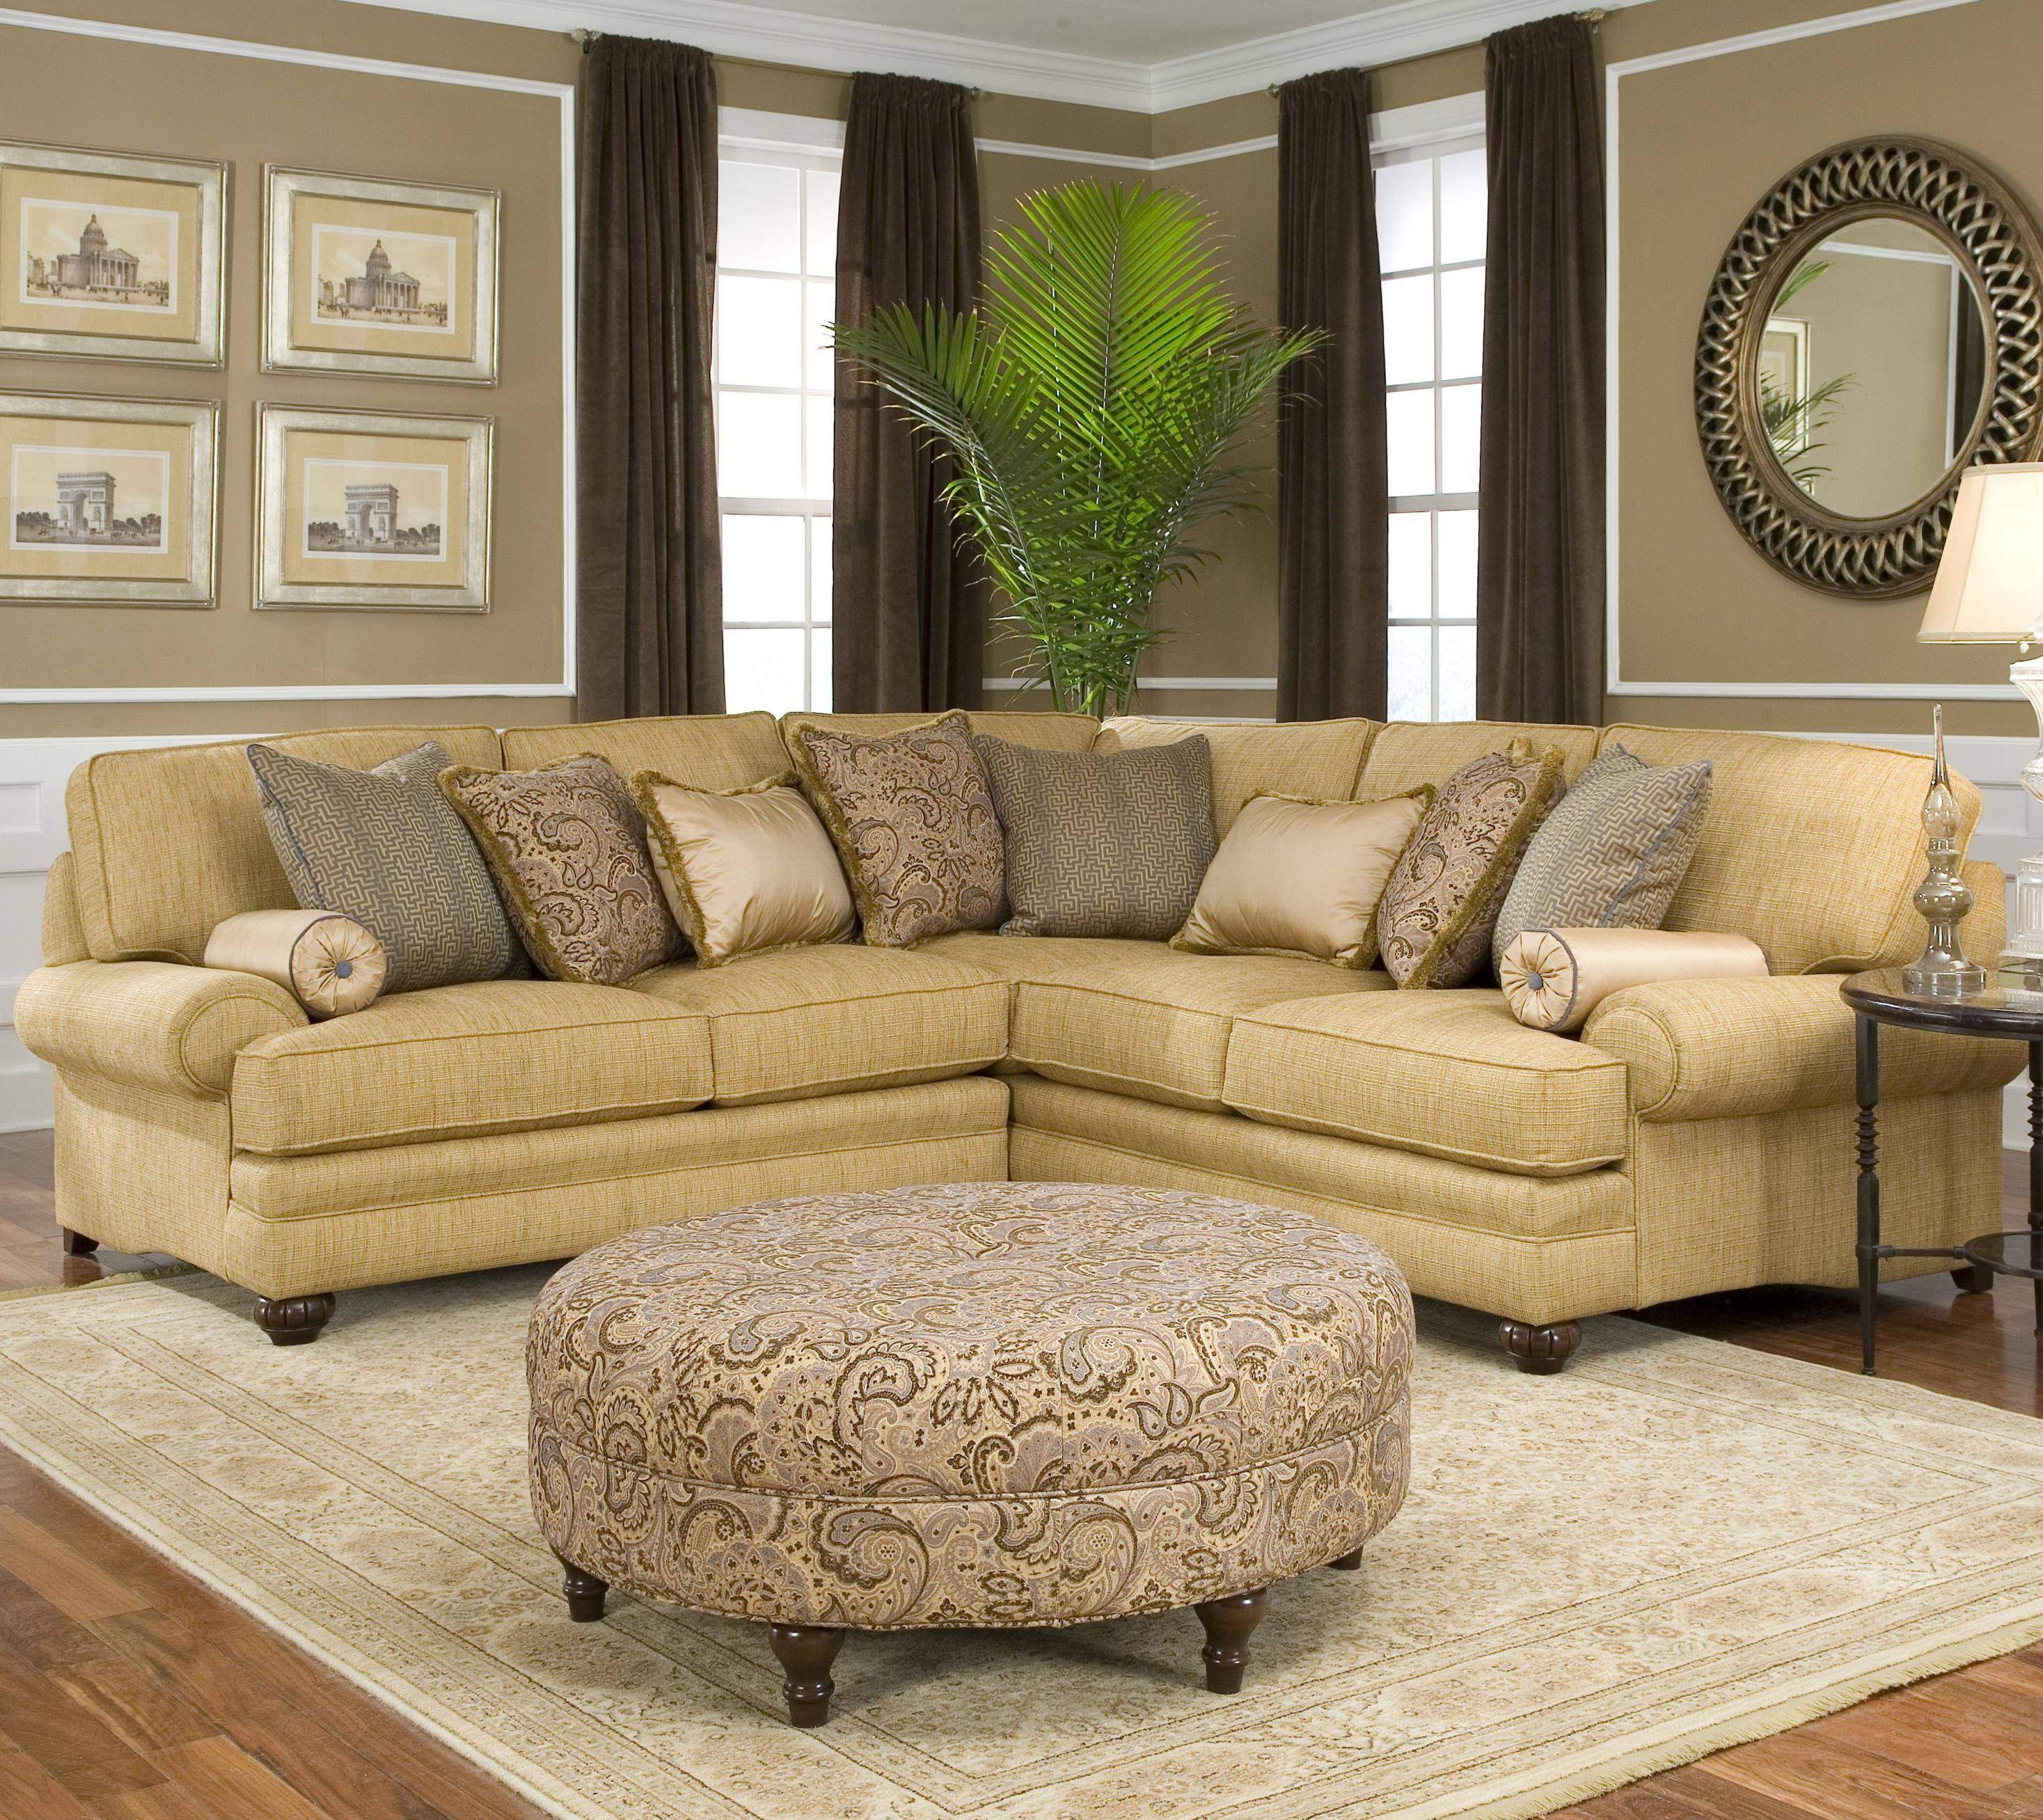 Traditional Styled Corner Sectional Sofasmith Brothers | Wolf pertaining to Traditional Sectional Sofas (Image 23 of 25)